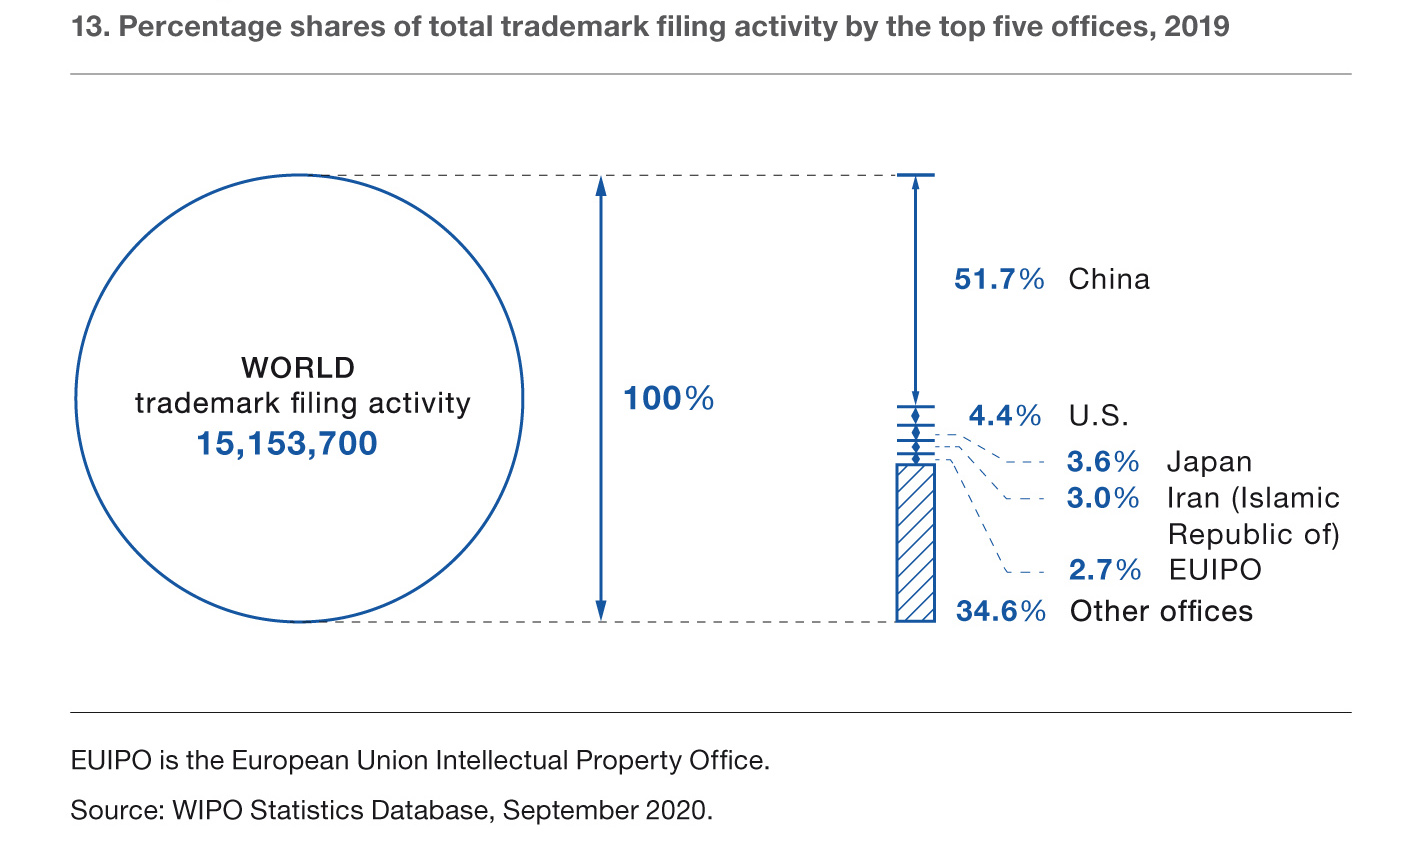 Percentage shares of total trademark filing activity by the top five offices, 2019